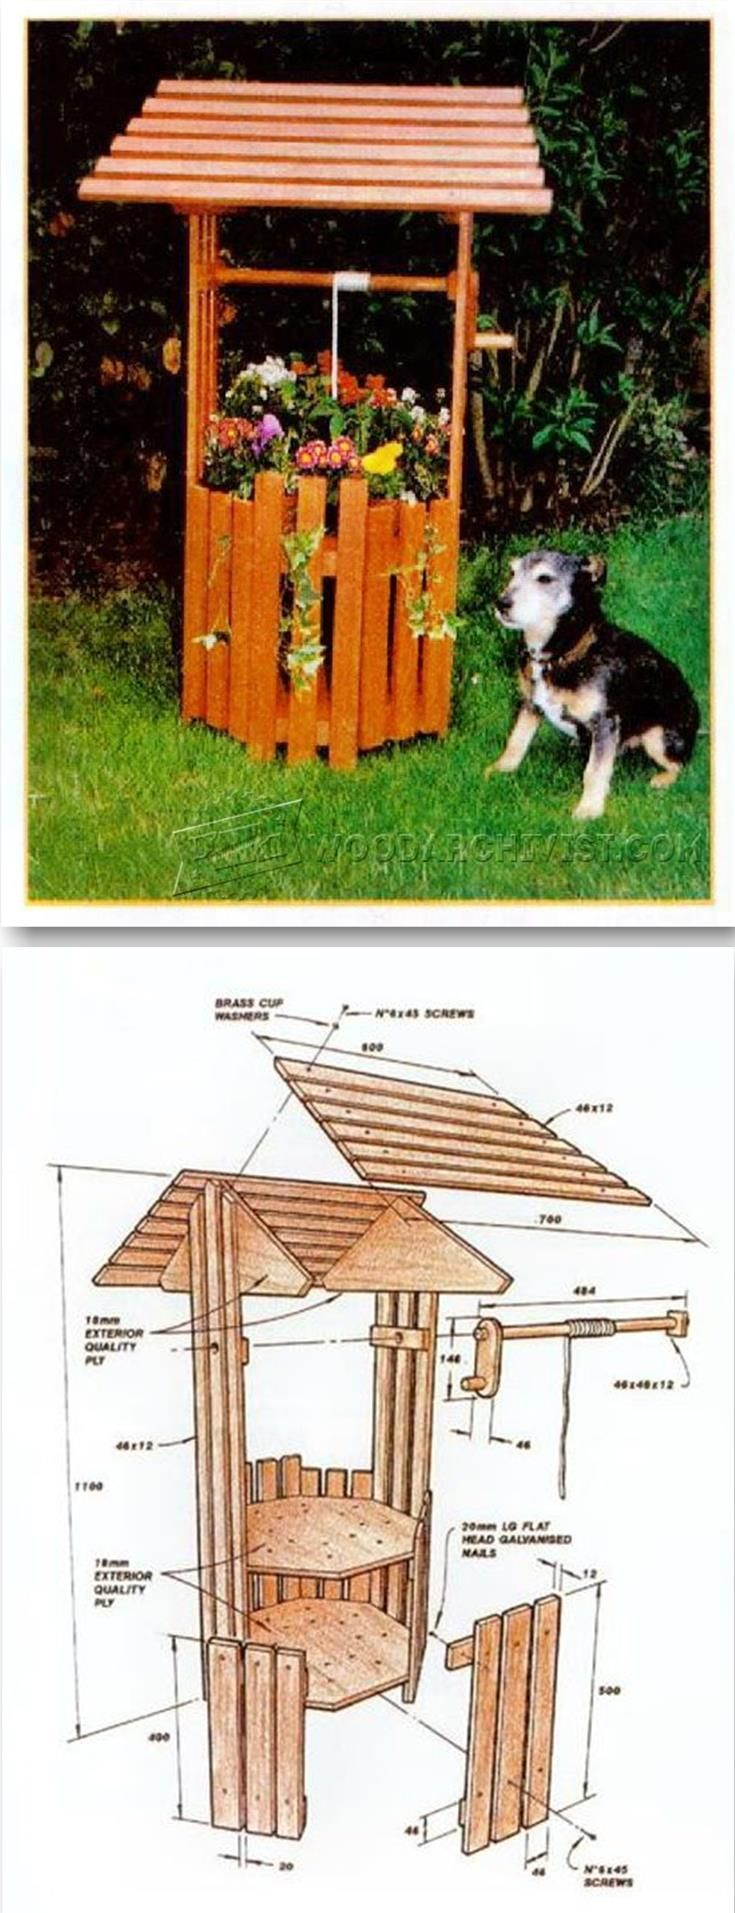 Wishing Well Planter Plans - Outdoor Plans and Projects | WoodArchivist.com